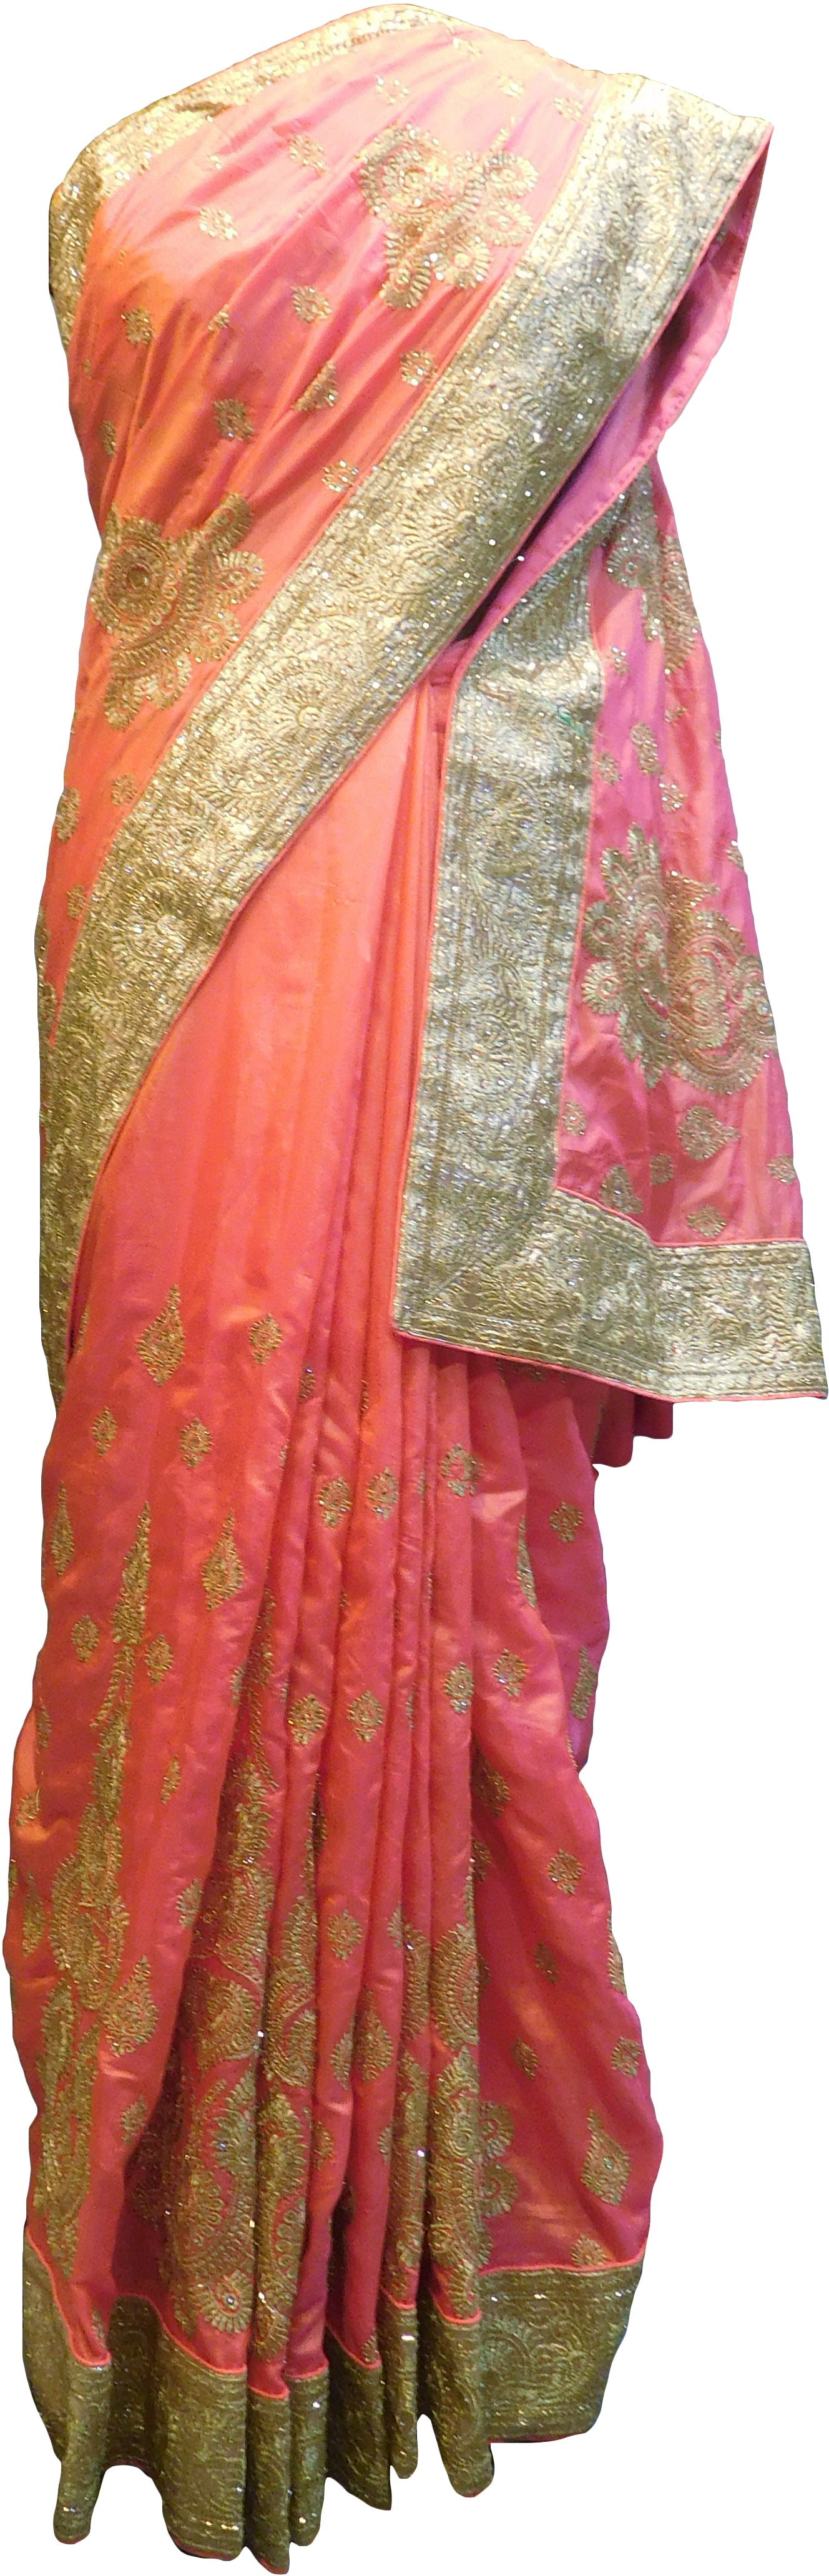 SMSAREE Pink Designer Wedding Partywear Silk Stone Cutdana & Zari Hand Embroidery Work Bridal Saree Sari With Blouse Piece F293